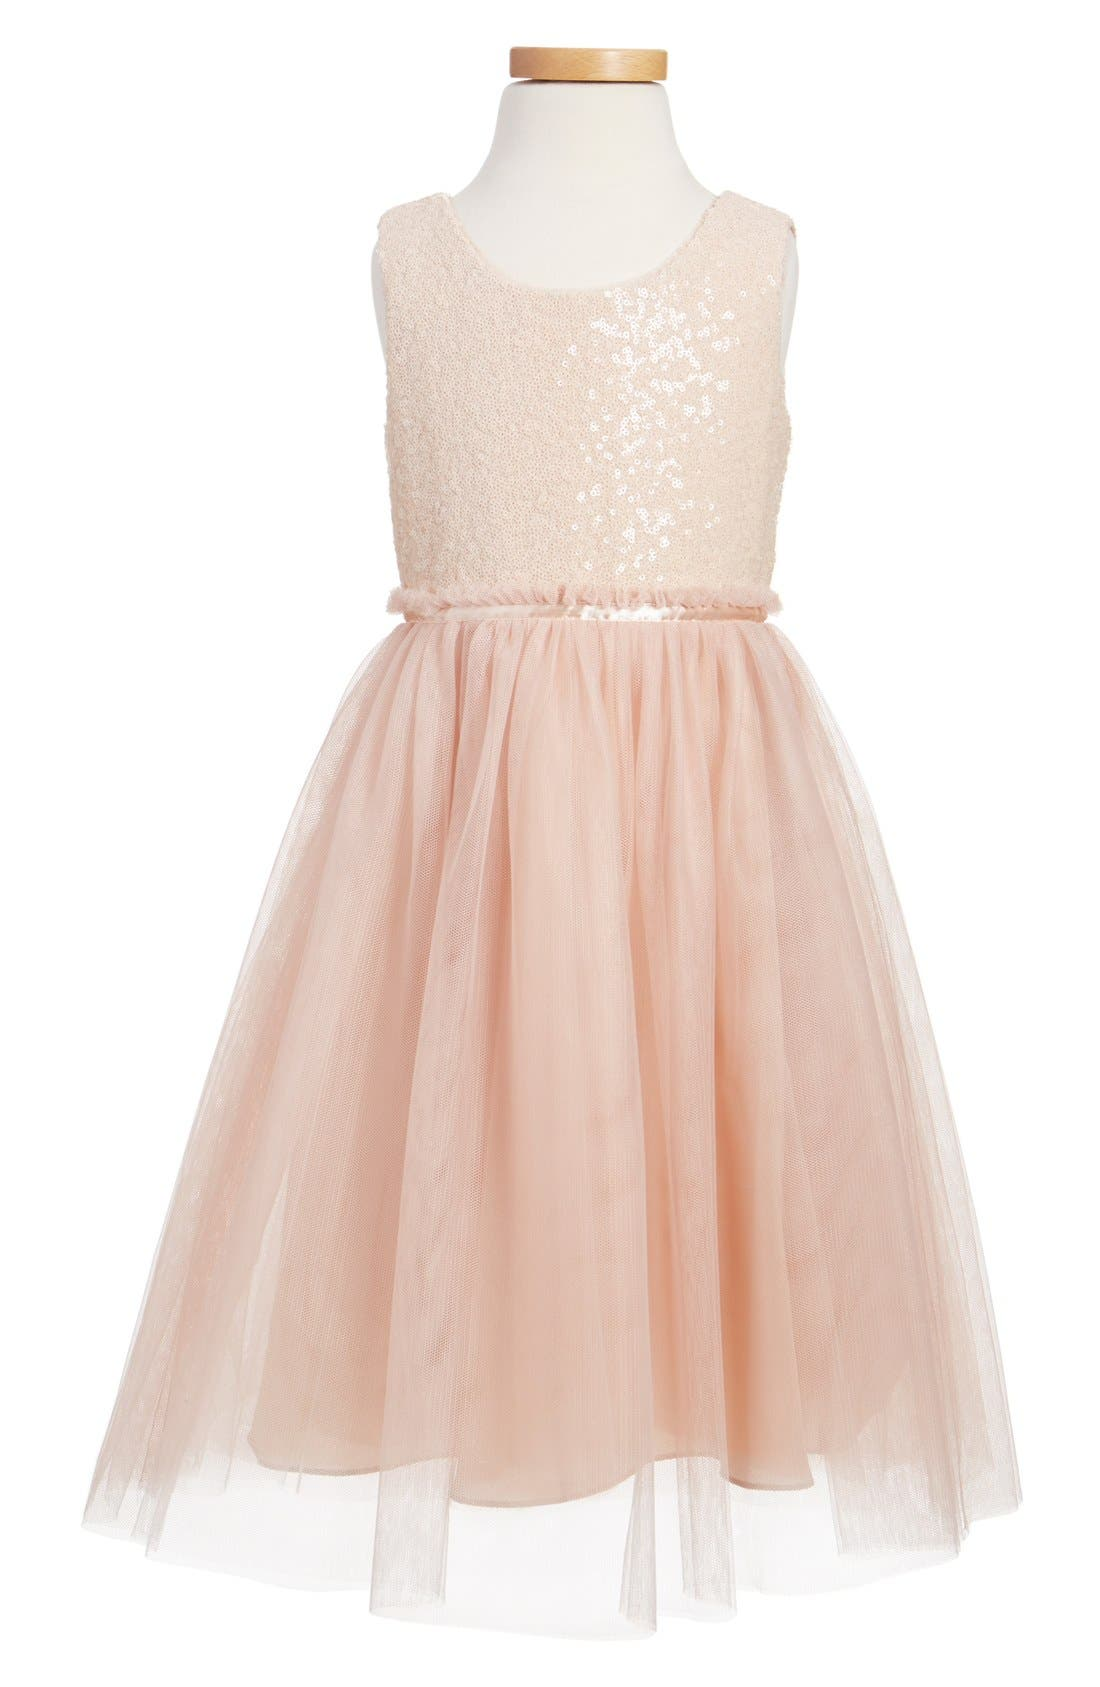 Jenny Yoo Collection 'Rosalie' Sequin & Tulle Dress